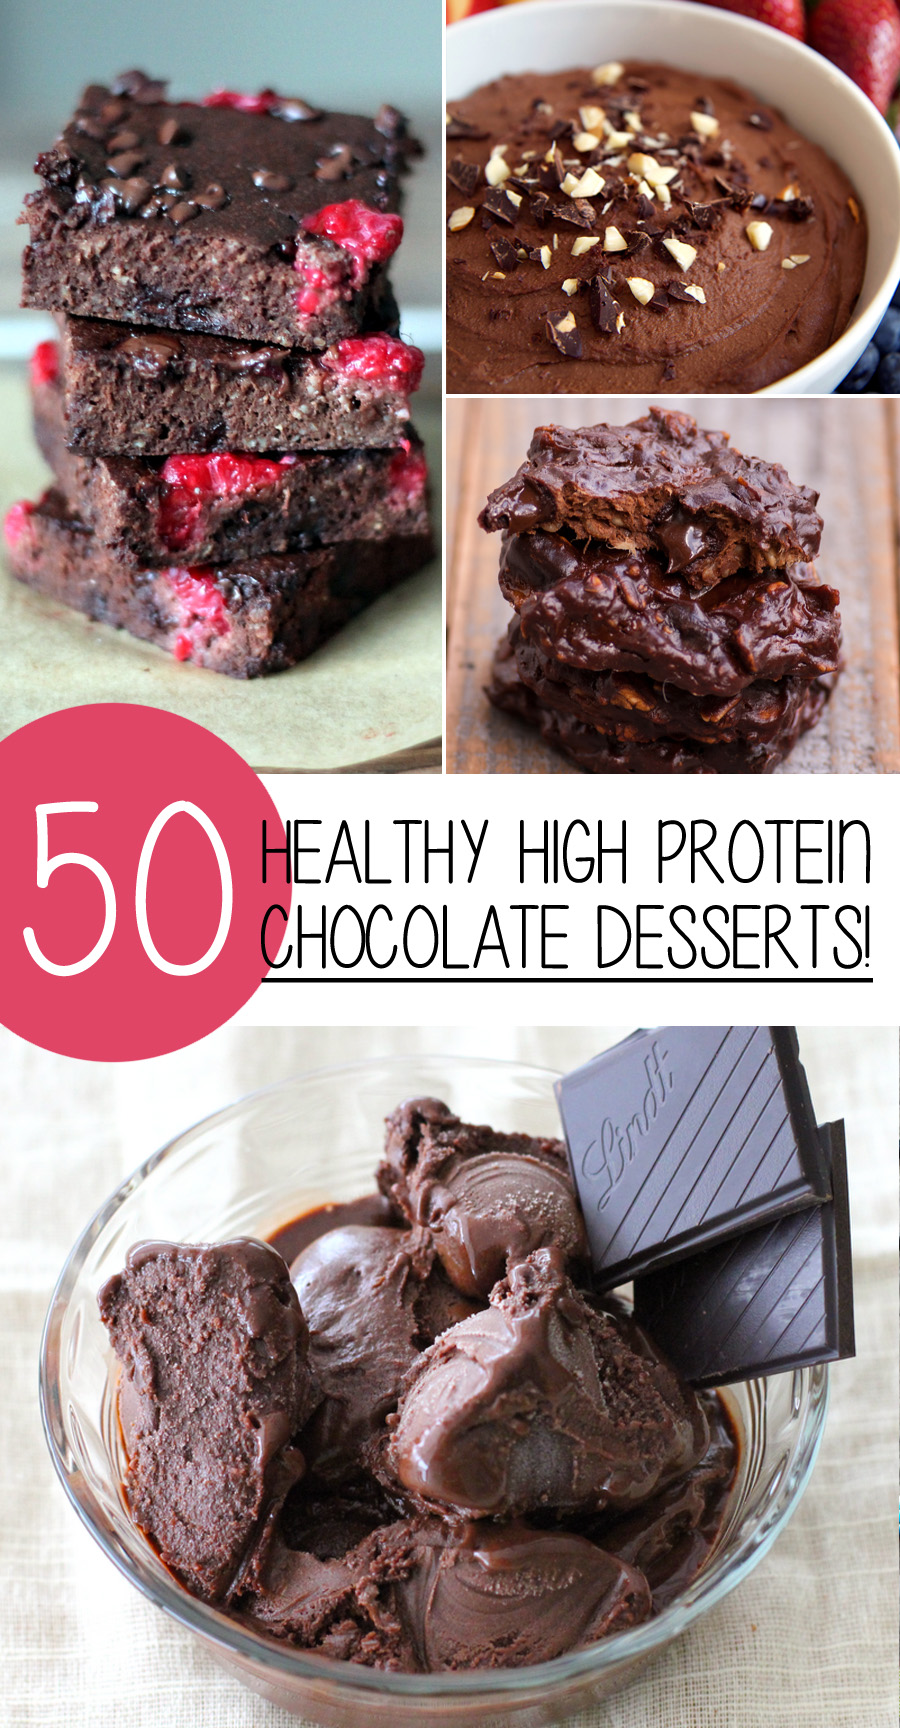 50 Healthy High Protein Chocolate Desserts You Will Love!